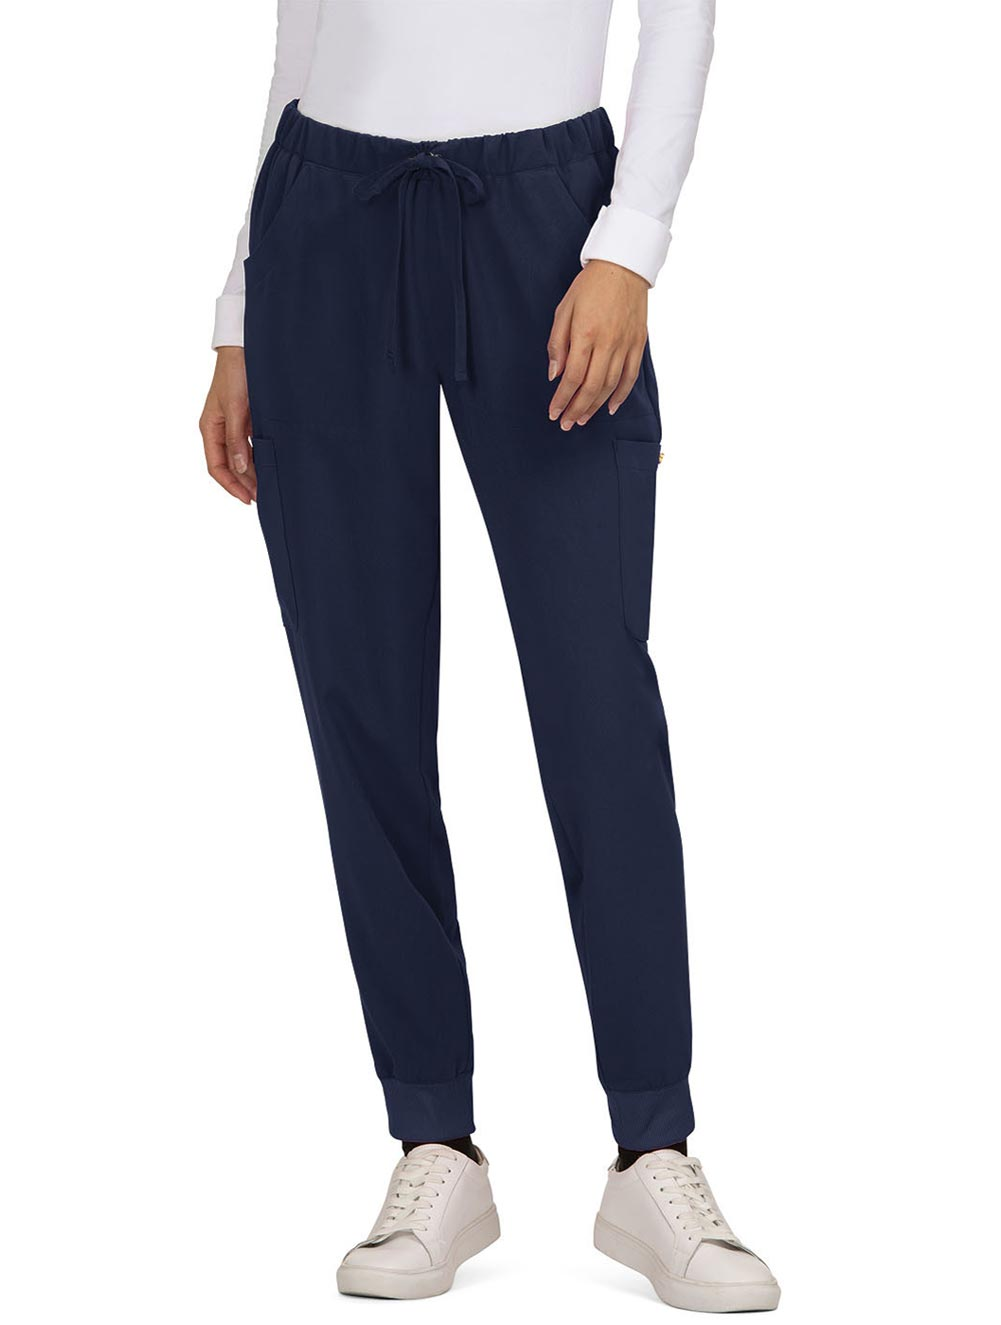 Regular Aster Pants